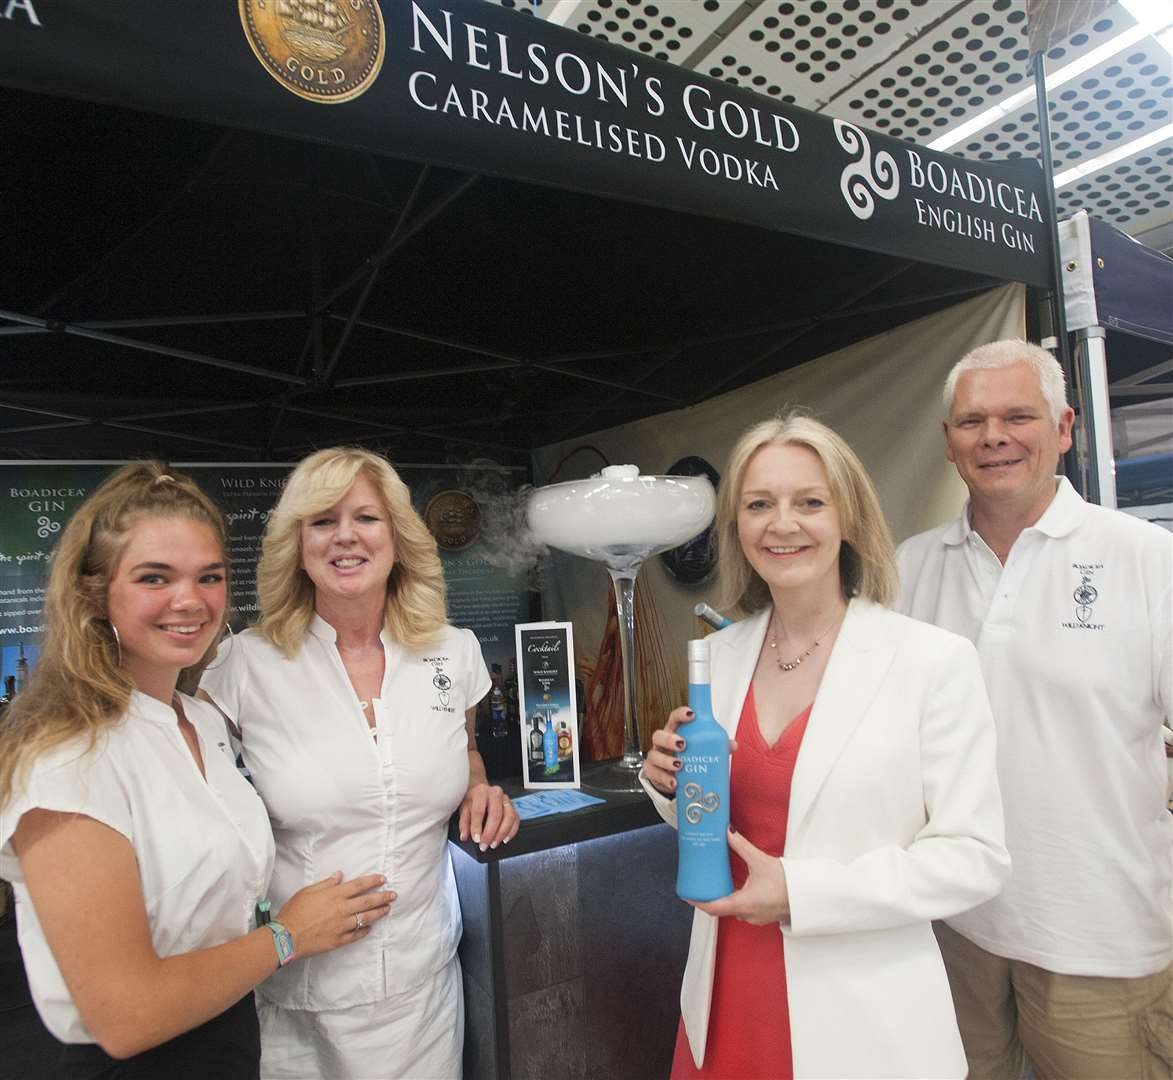 MP Elizabeth Truss at The Royal Norfolk Show Pictured with local Business Producing Nelson's Gold Vodka. Boadicea English Gin. FLtoR Katya Brown. Stephanie Brown. Elizabeth Truss (MP) Matt Brown.. (2788460)